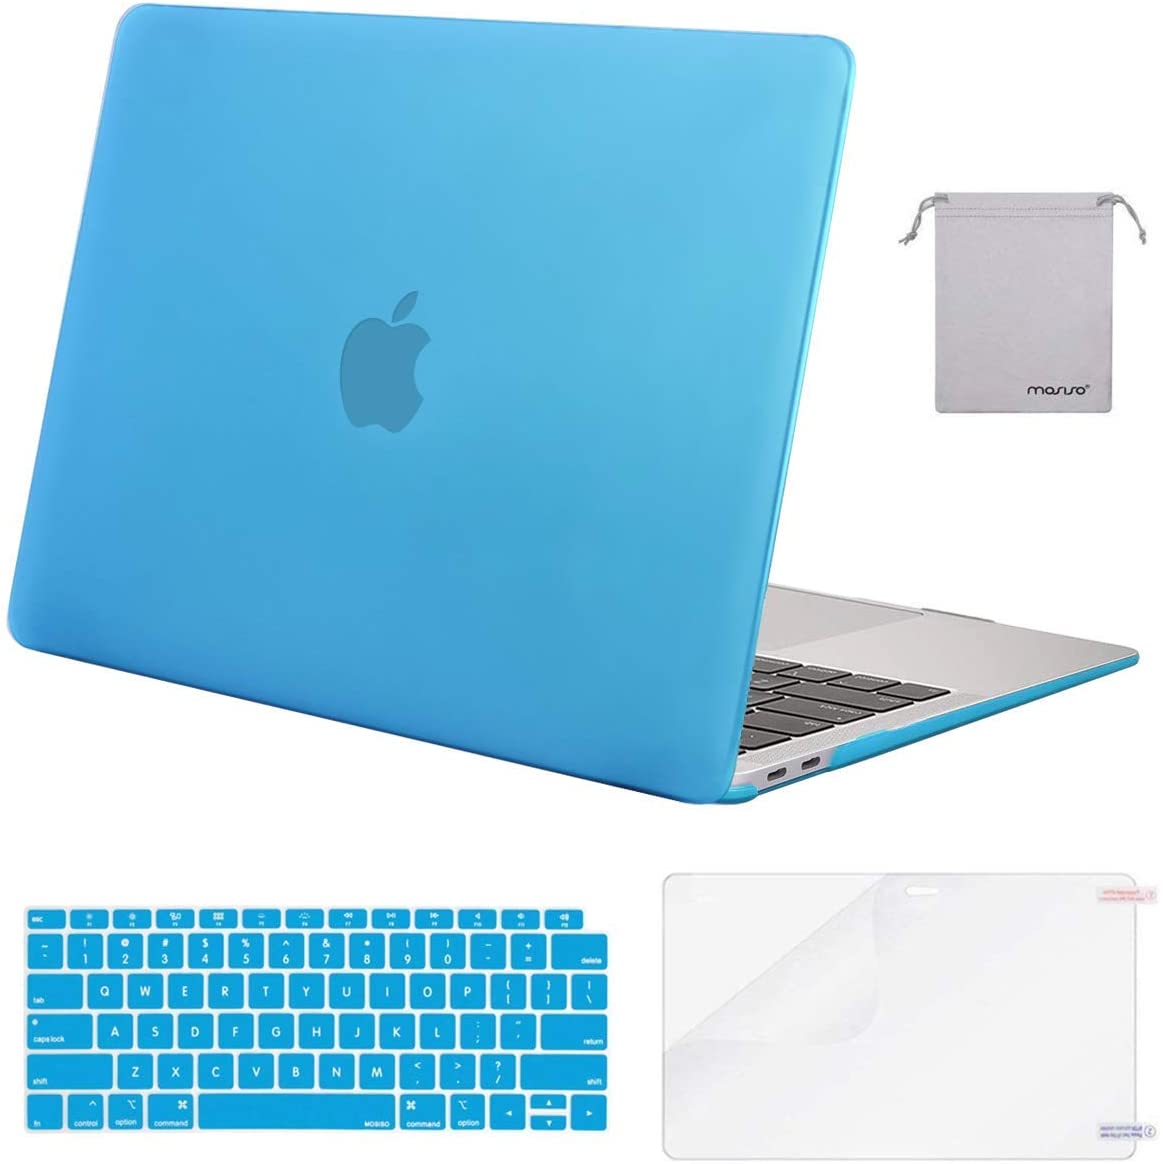 MOSISO Compatible with MacBook Air 13 inch Case 2020 2019 2018 Release A2337 M1 A2179 A1932 Retina Display Touch ID, Plastic Hard Shell&Keyboard Cover&Screen Protector&Storage Bag, Aqua Blue